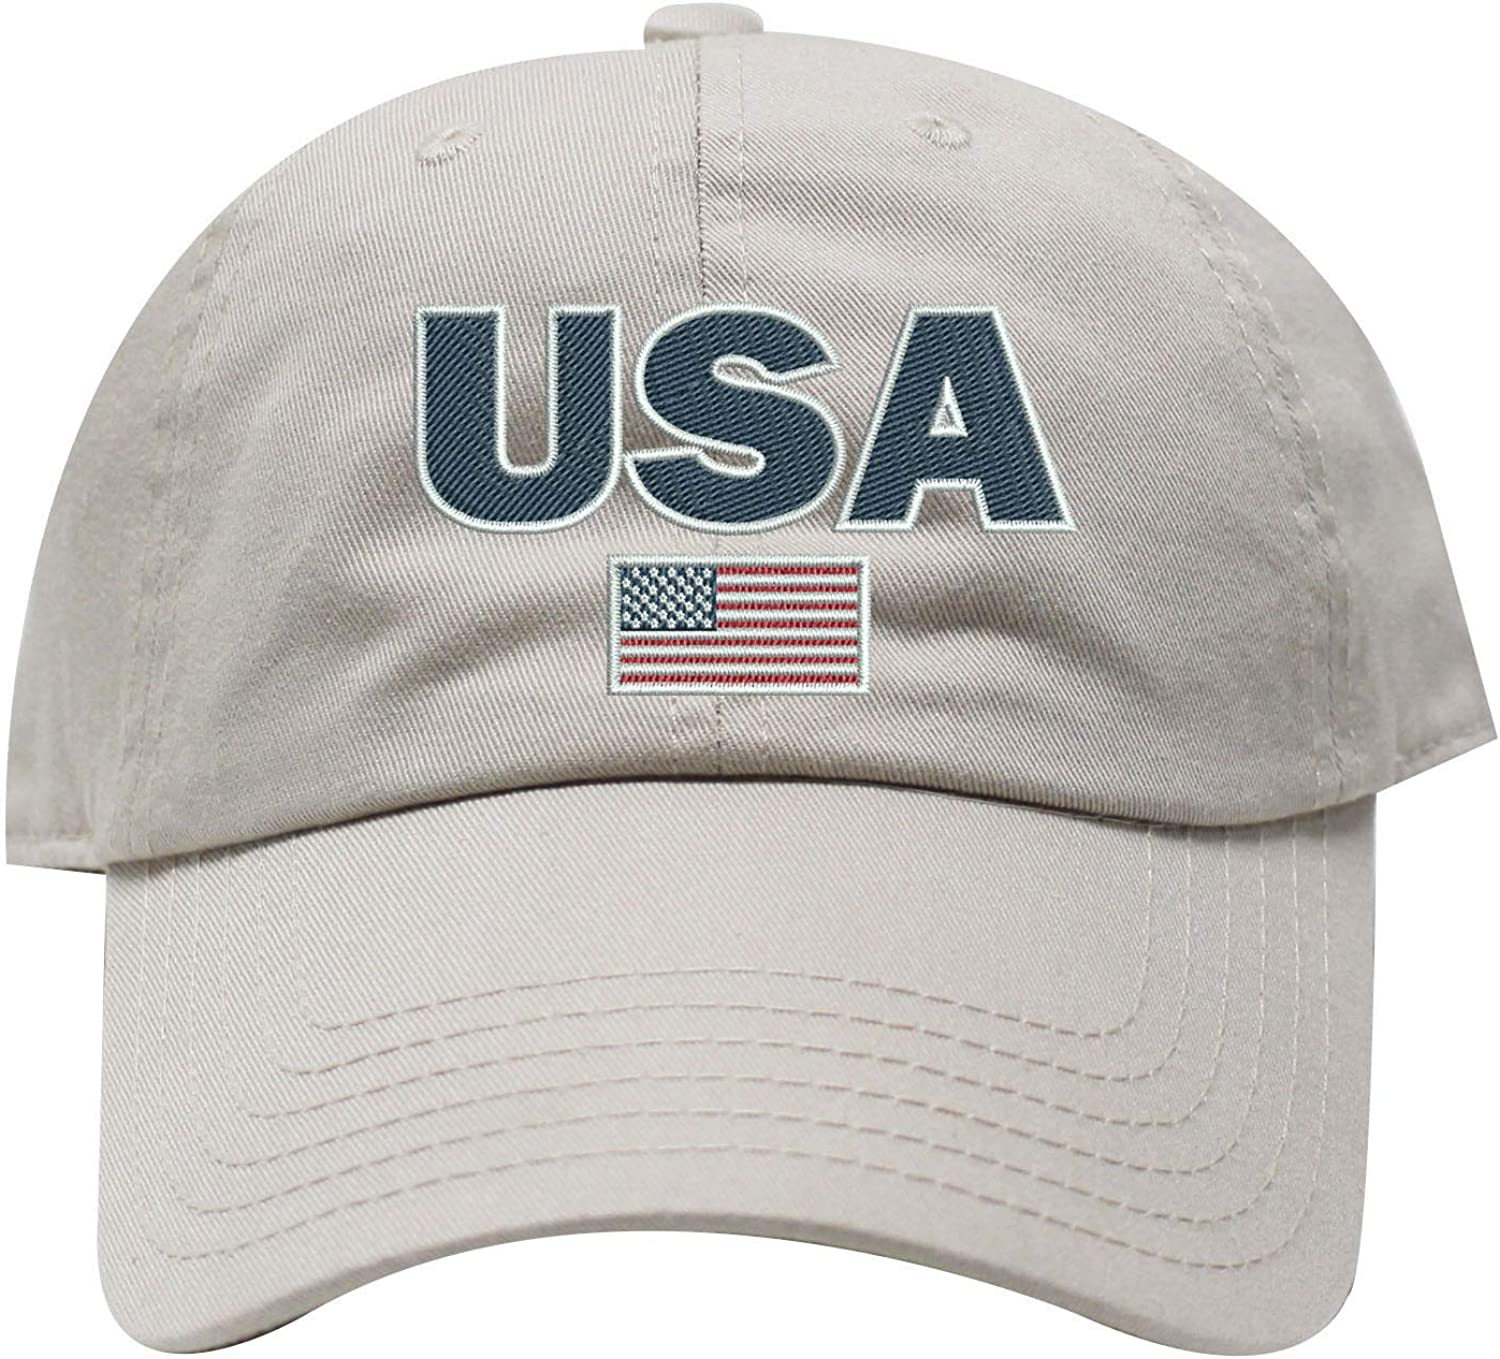 INK STITCH USA American Flag Unstructured Cotton Baseball Caps 21 Colors